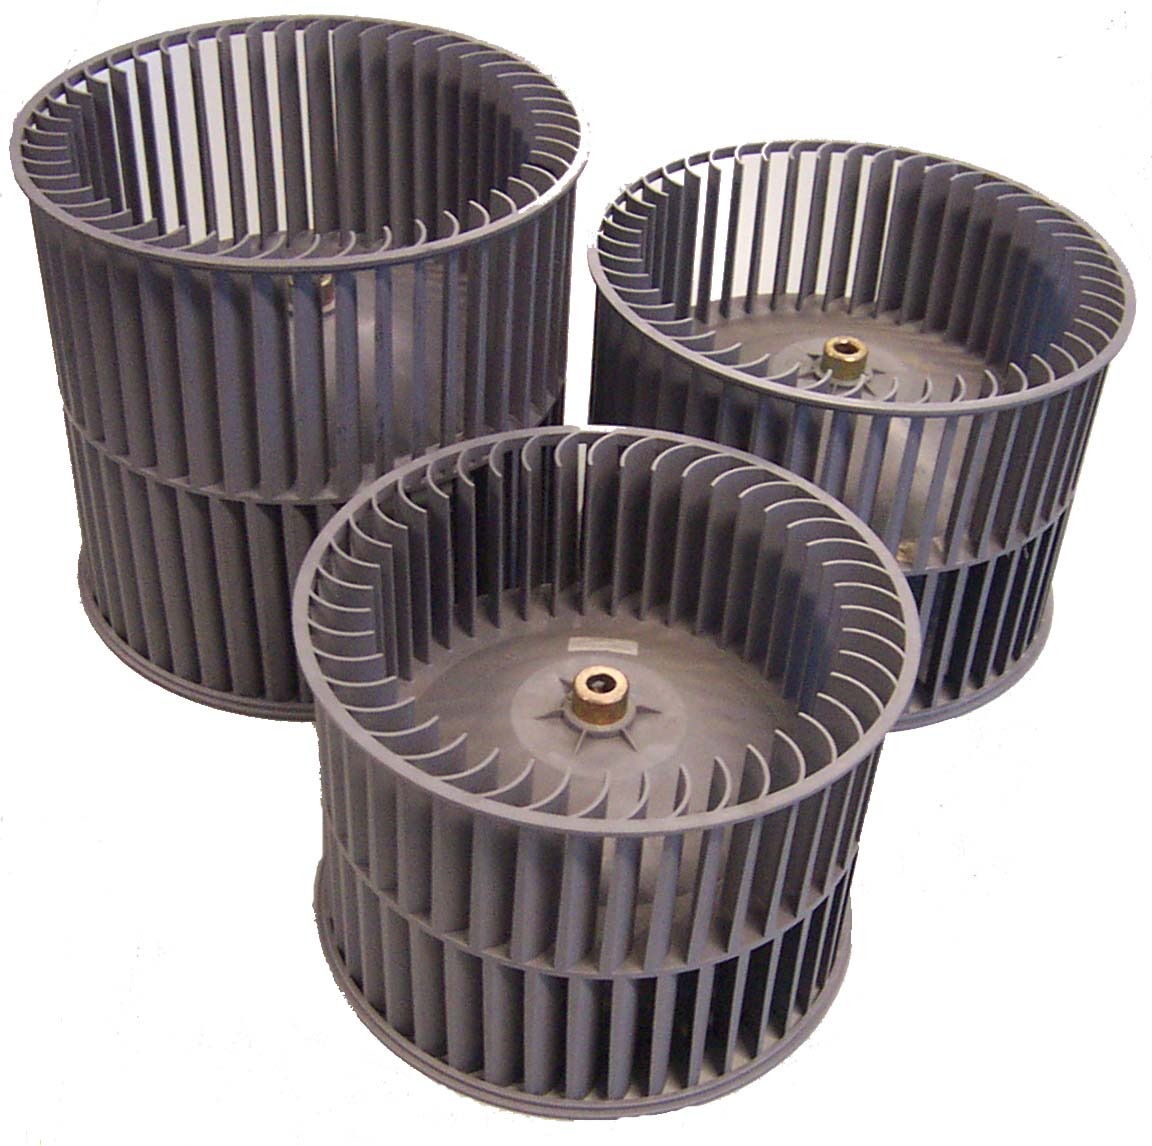 Industrial Blower Fan Blades : Industrial oem fans blowers ventilators